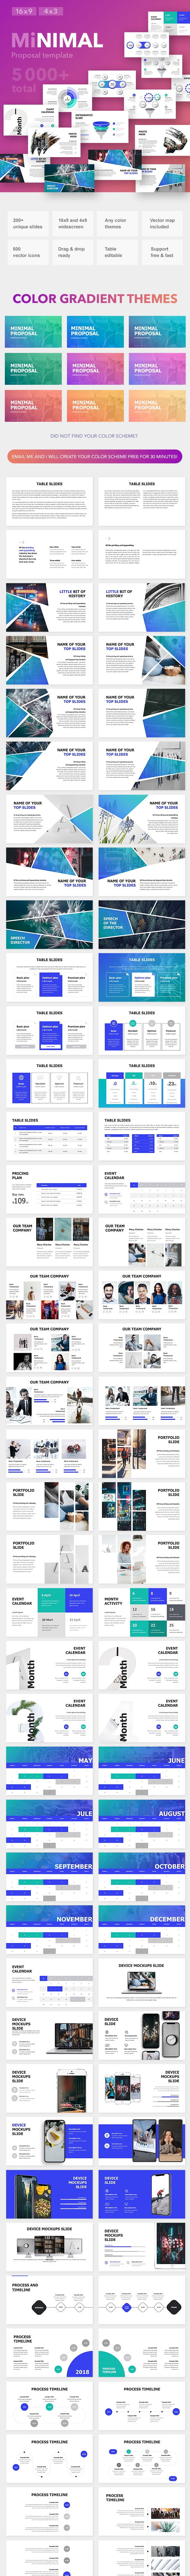 Minimal Clean - Creative Keynote Templates